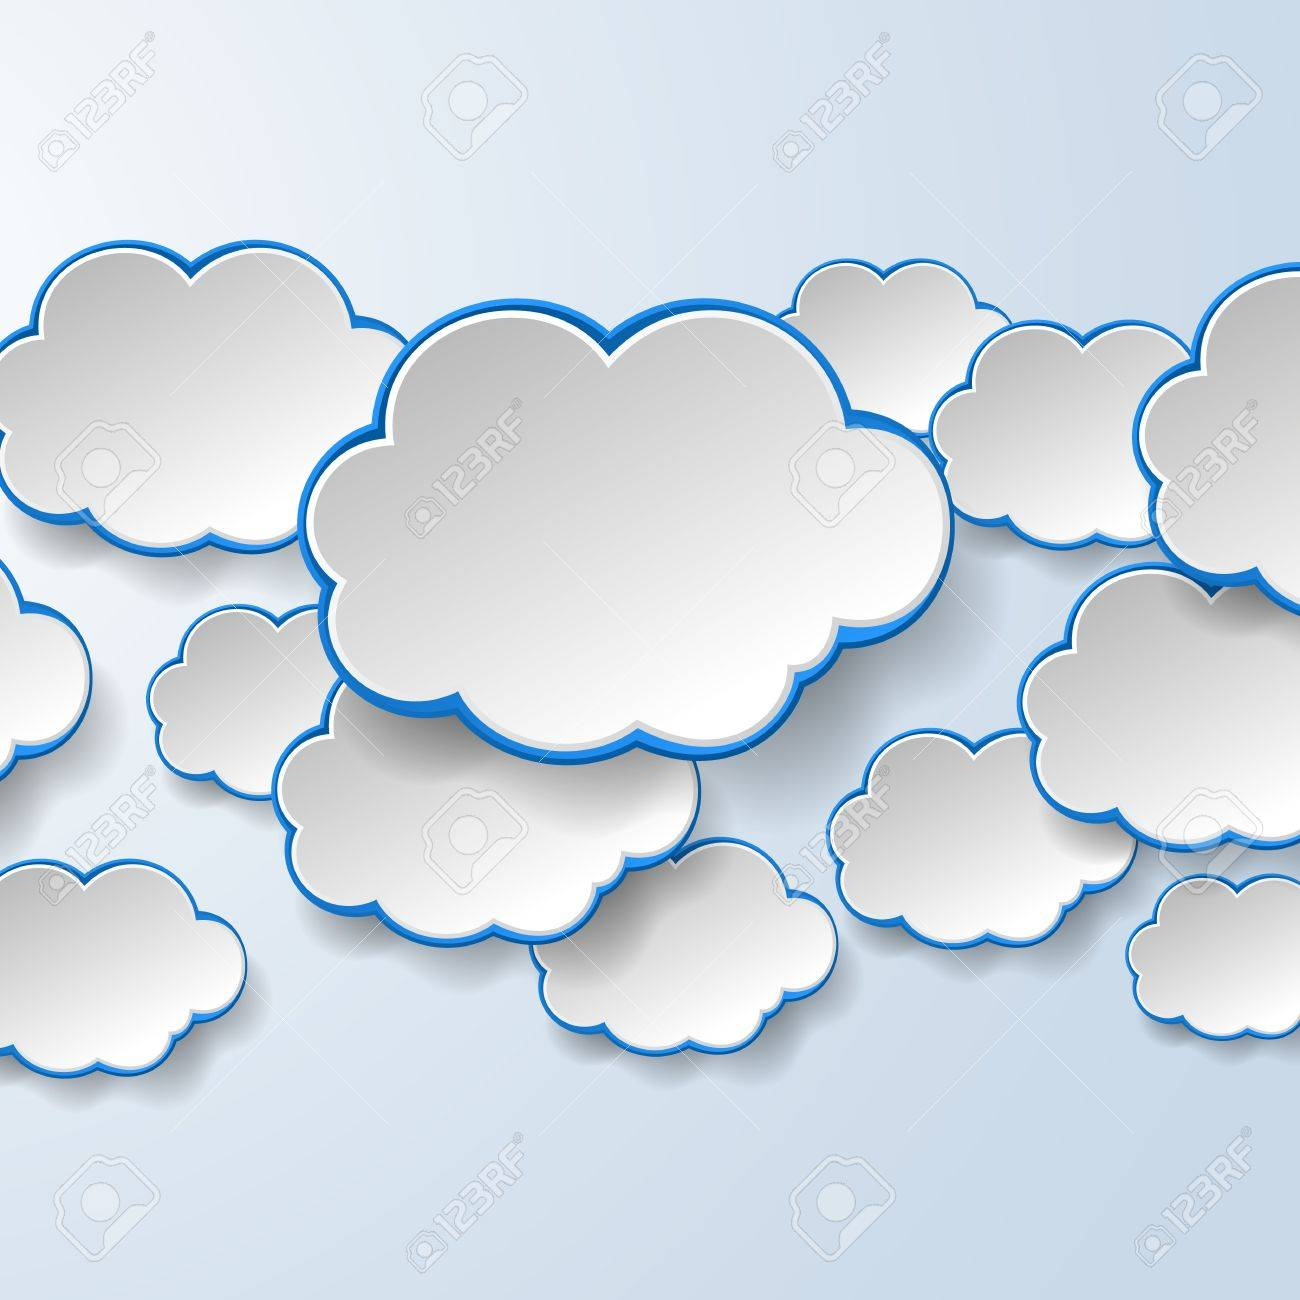 Abstract white paper speech bubbles on light blue background. Cloud services concept. Stock Vector - 18405680